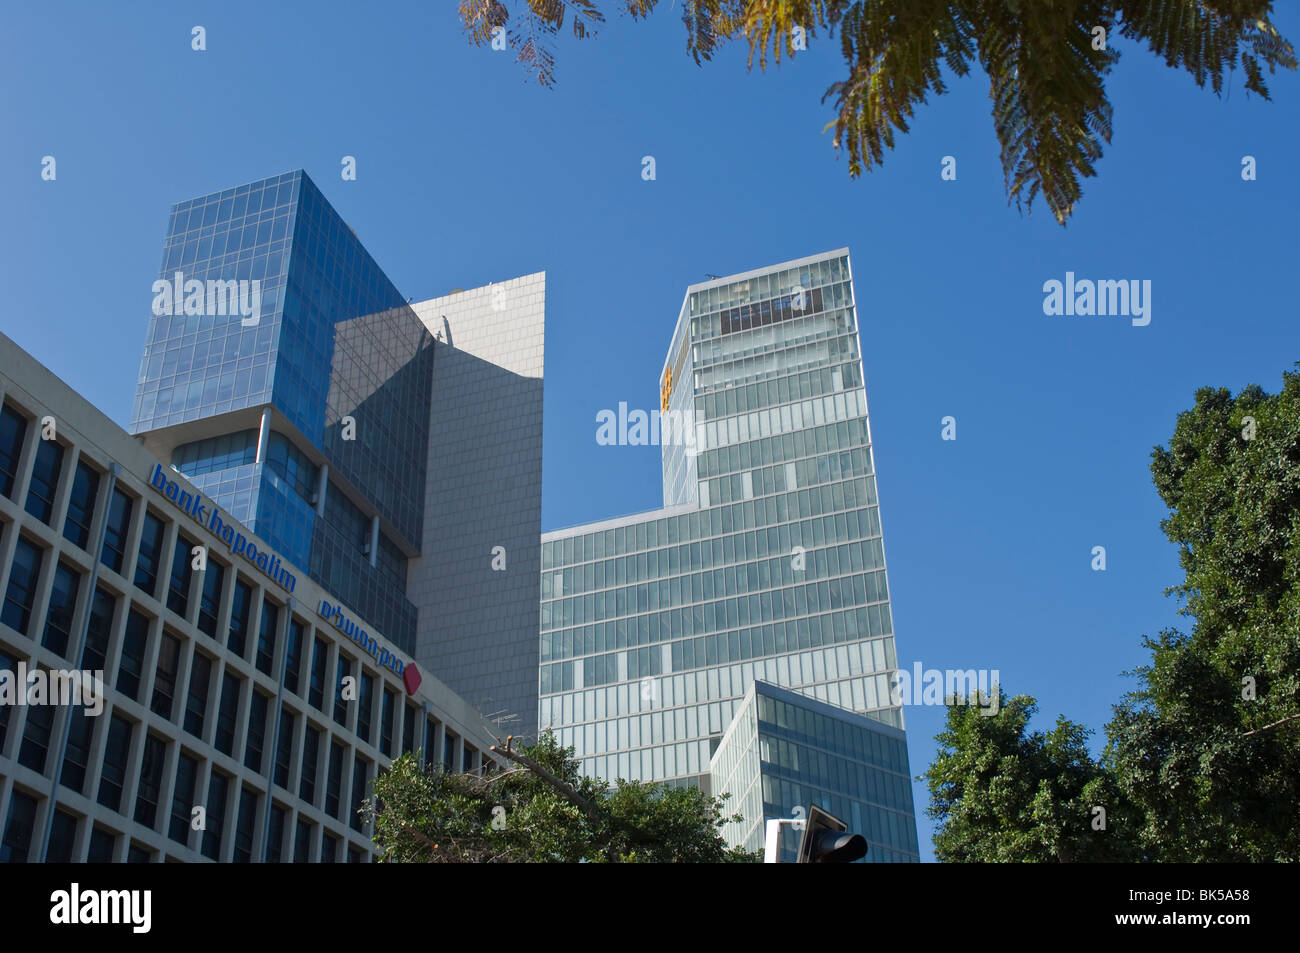 Tel Aviv, Israel, Middle East - Stock Image